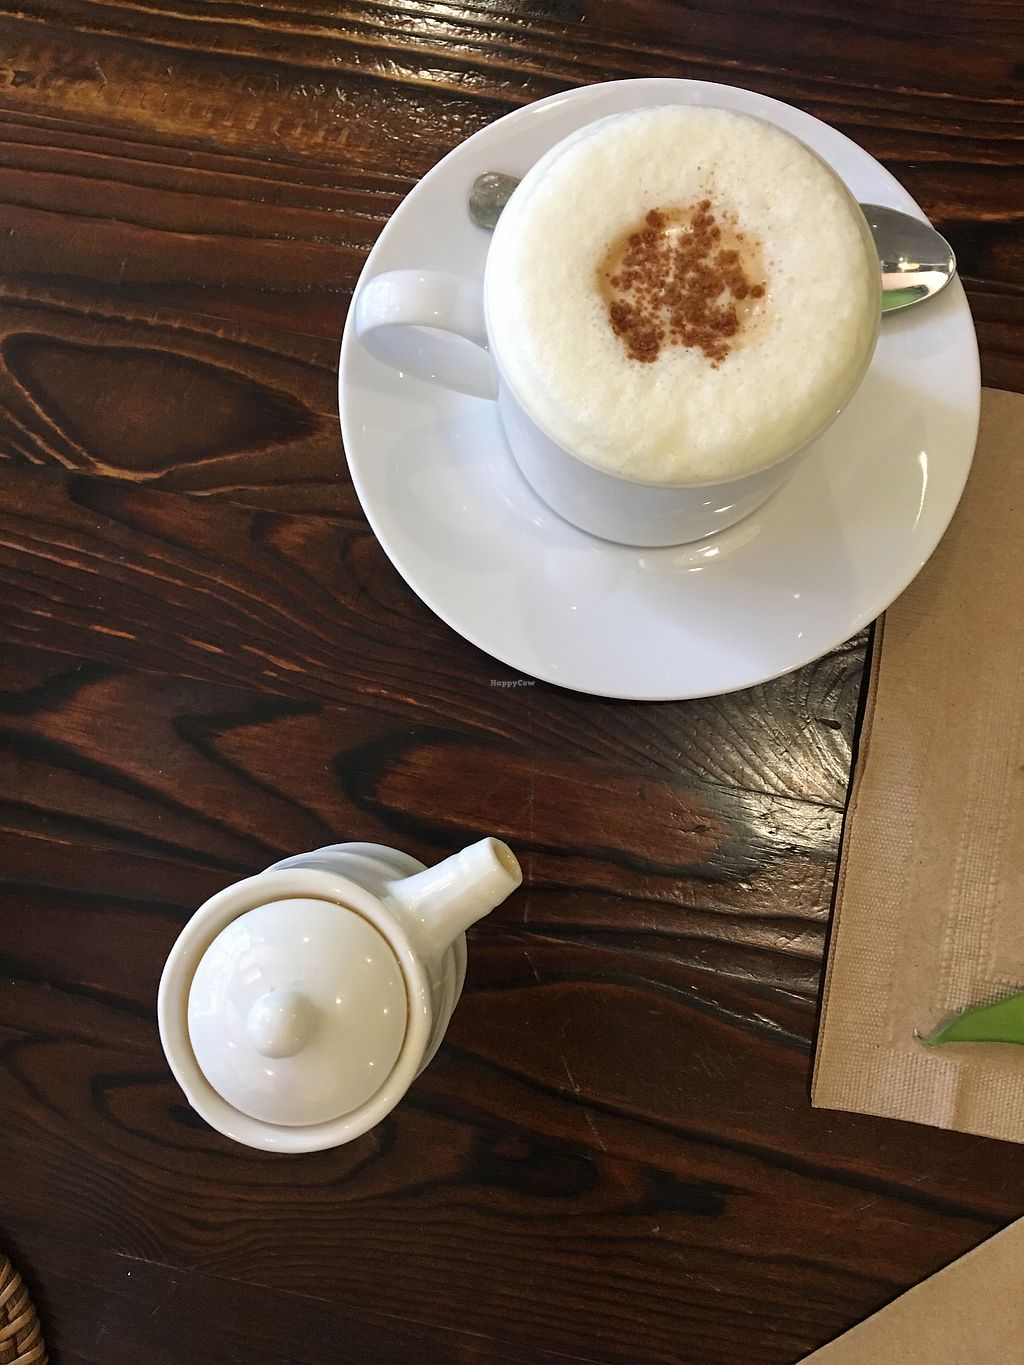 """Photo of VegiLicious  by <a href=""""/members/profile/jkseoulcraic"""">jkseoulcraic</a> <br/>Cappuccino! <br/> March 18, 2018  - <a href='/contact/abuse/image/36781/372654'>Report</a>"""